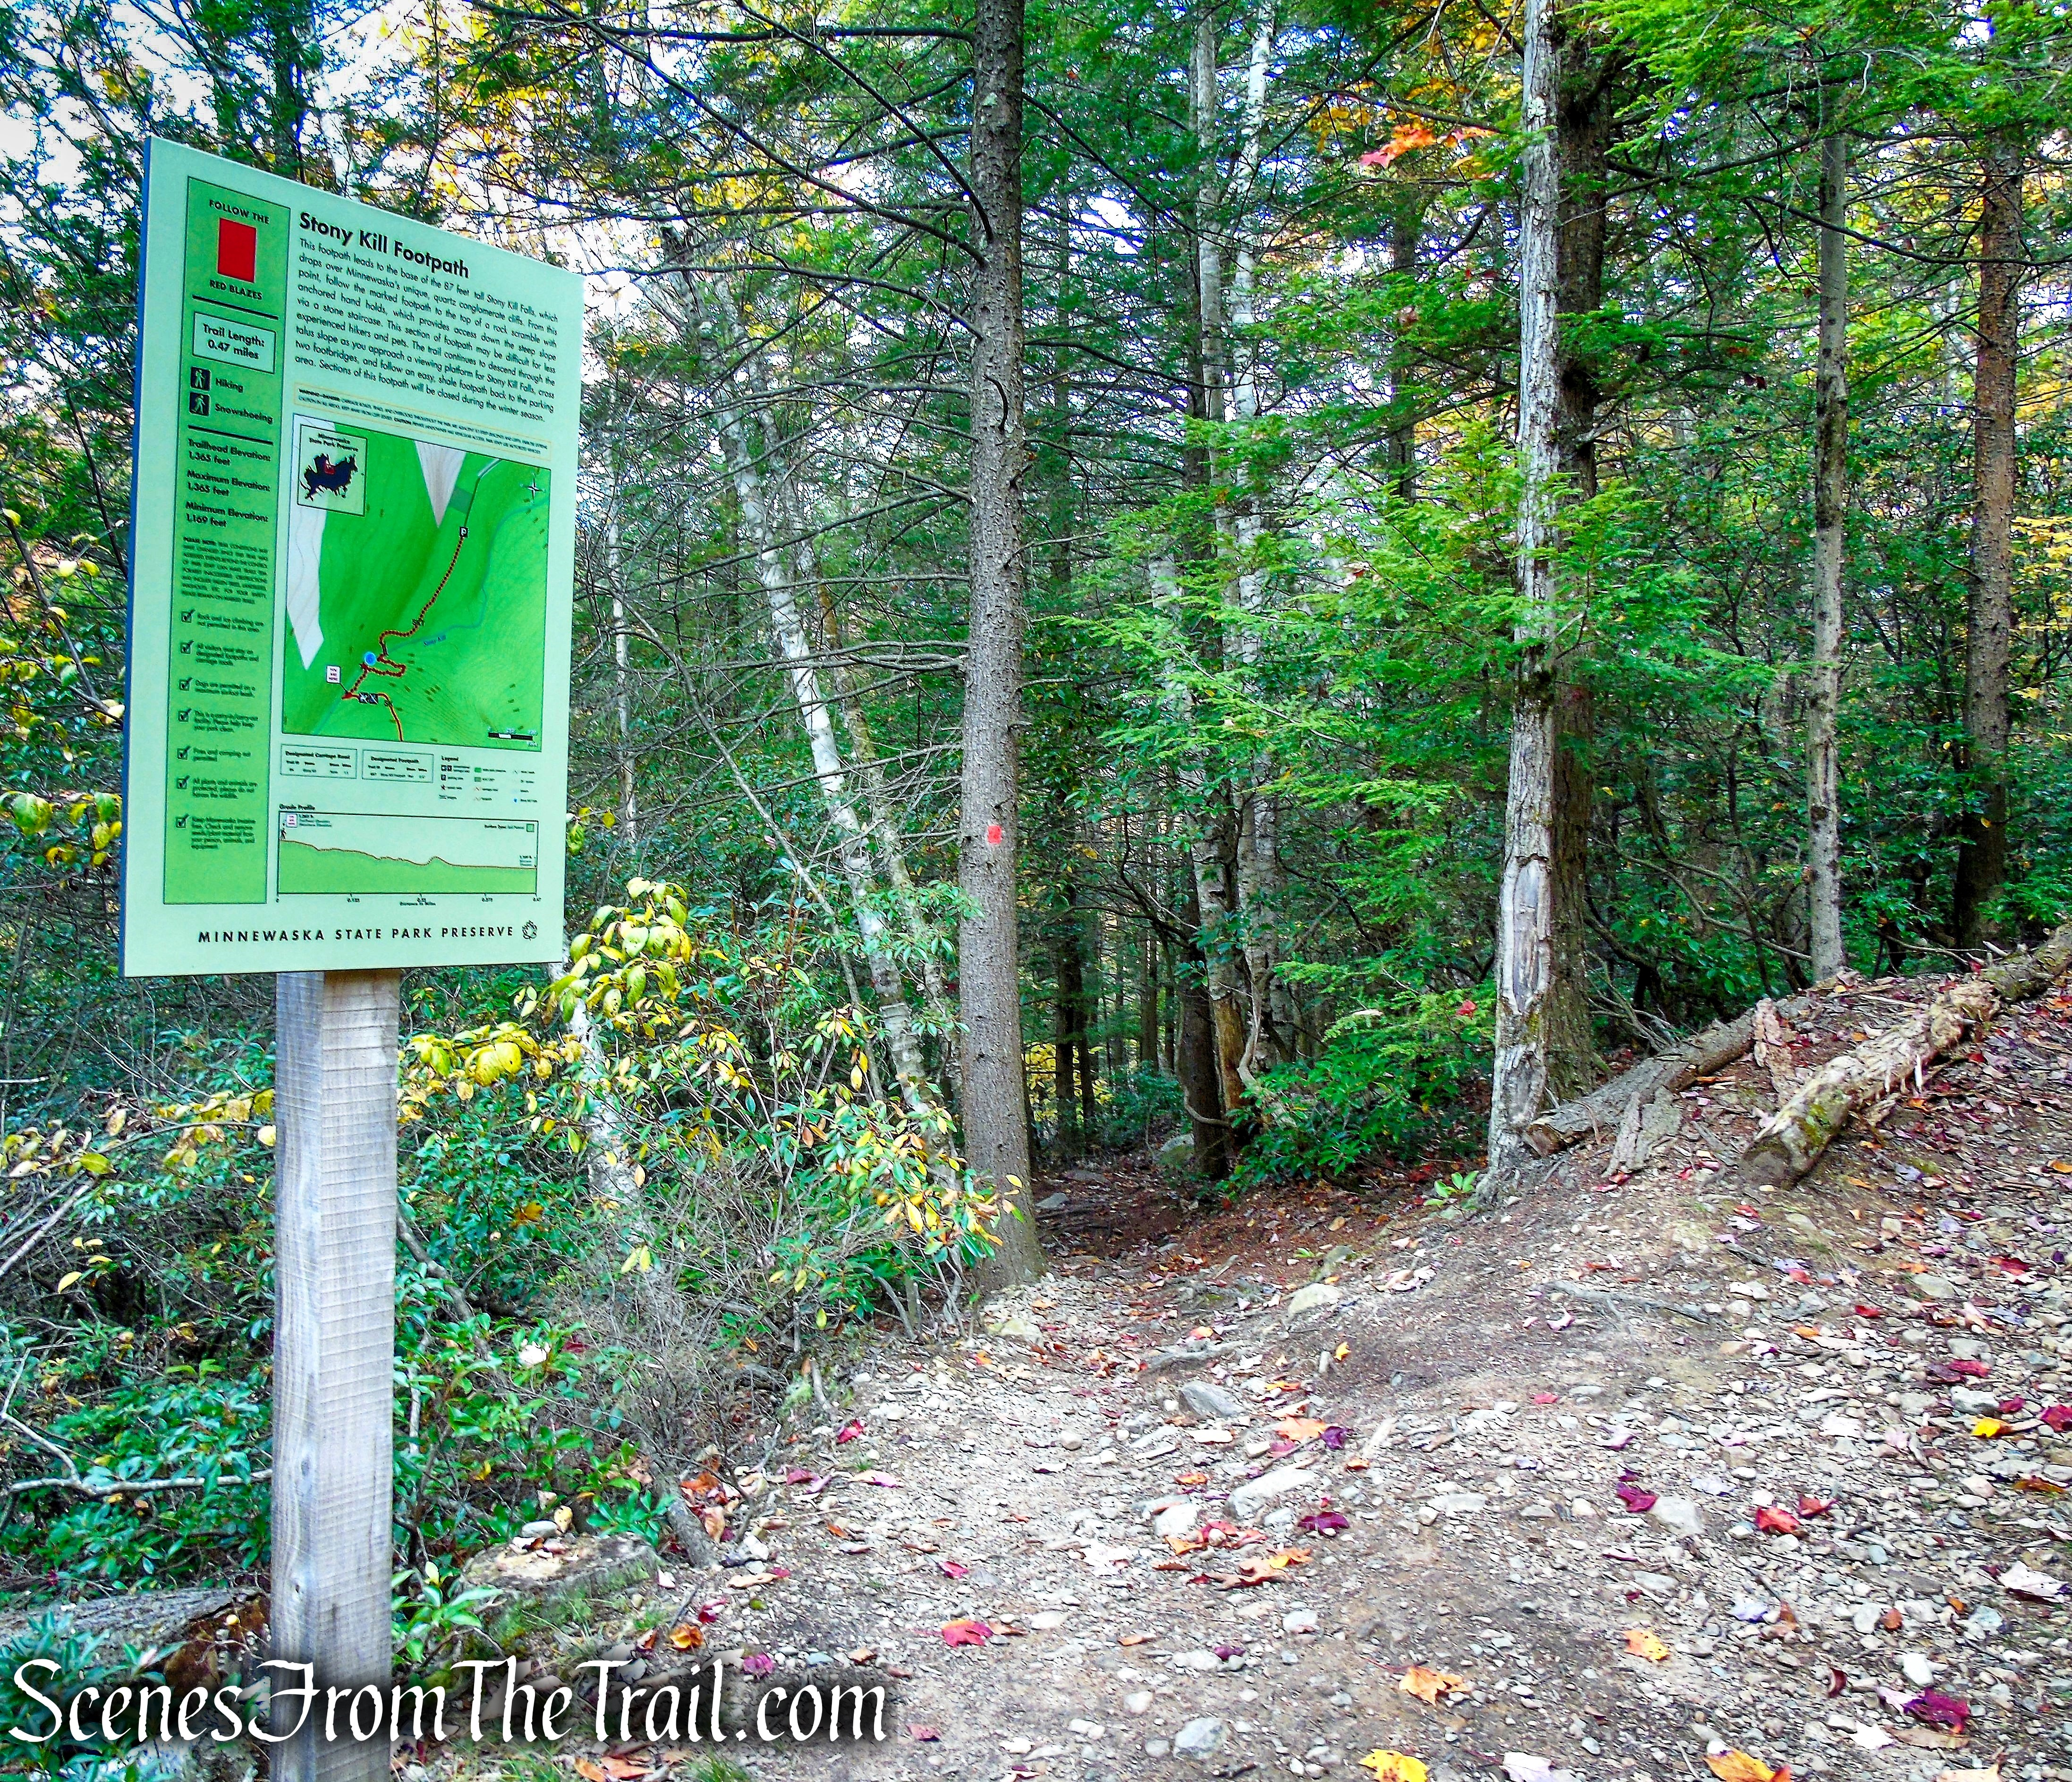 turn right on Stony Kill Footpath - Minnewaska State Park Preserve